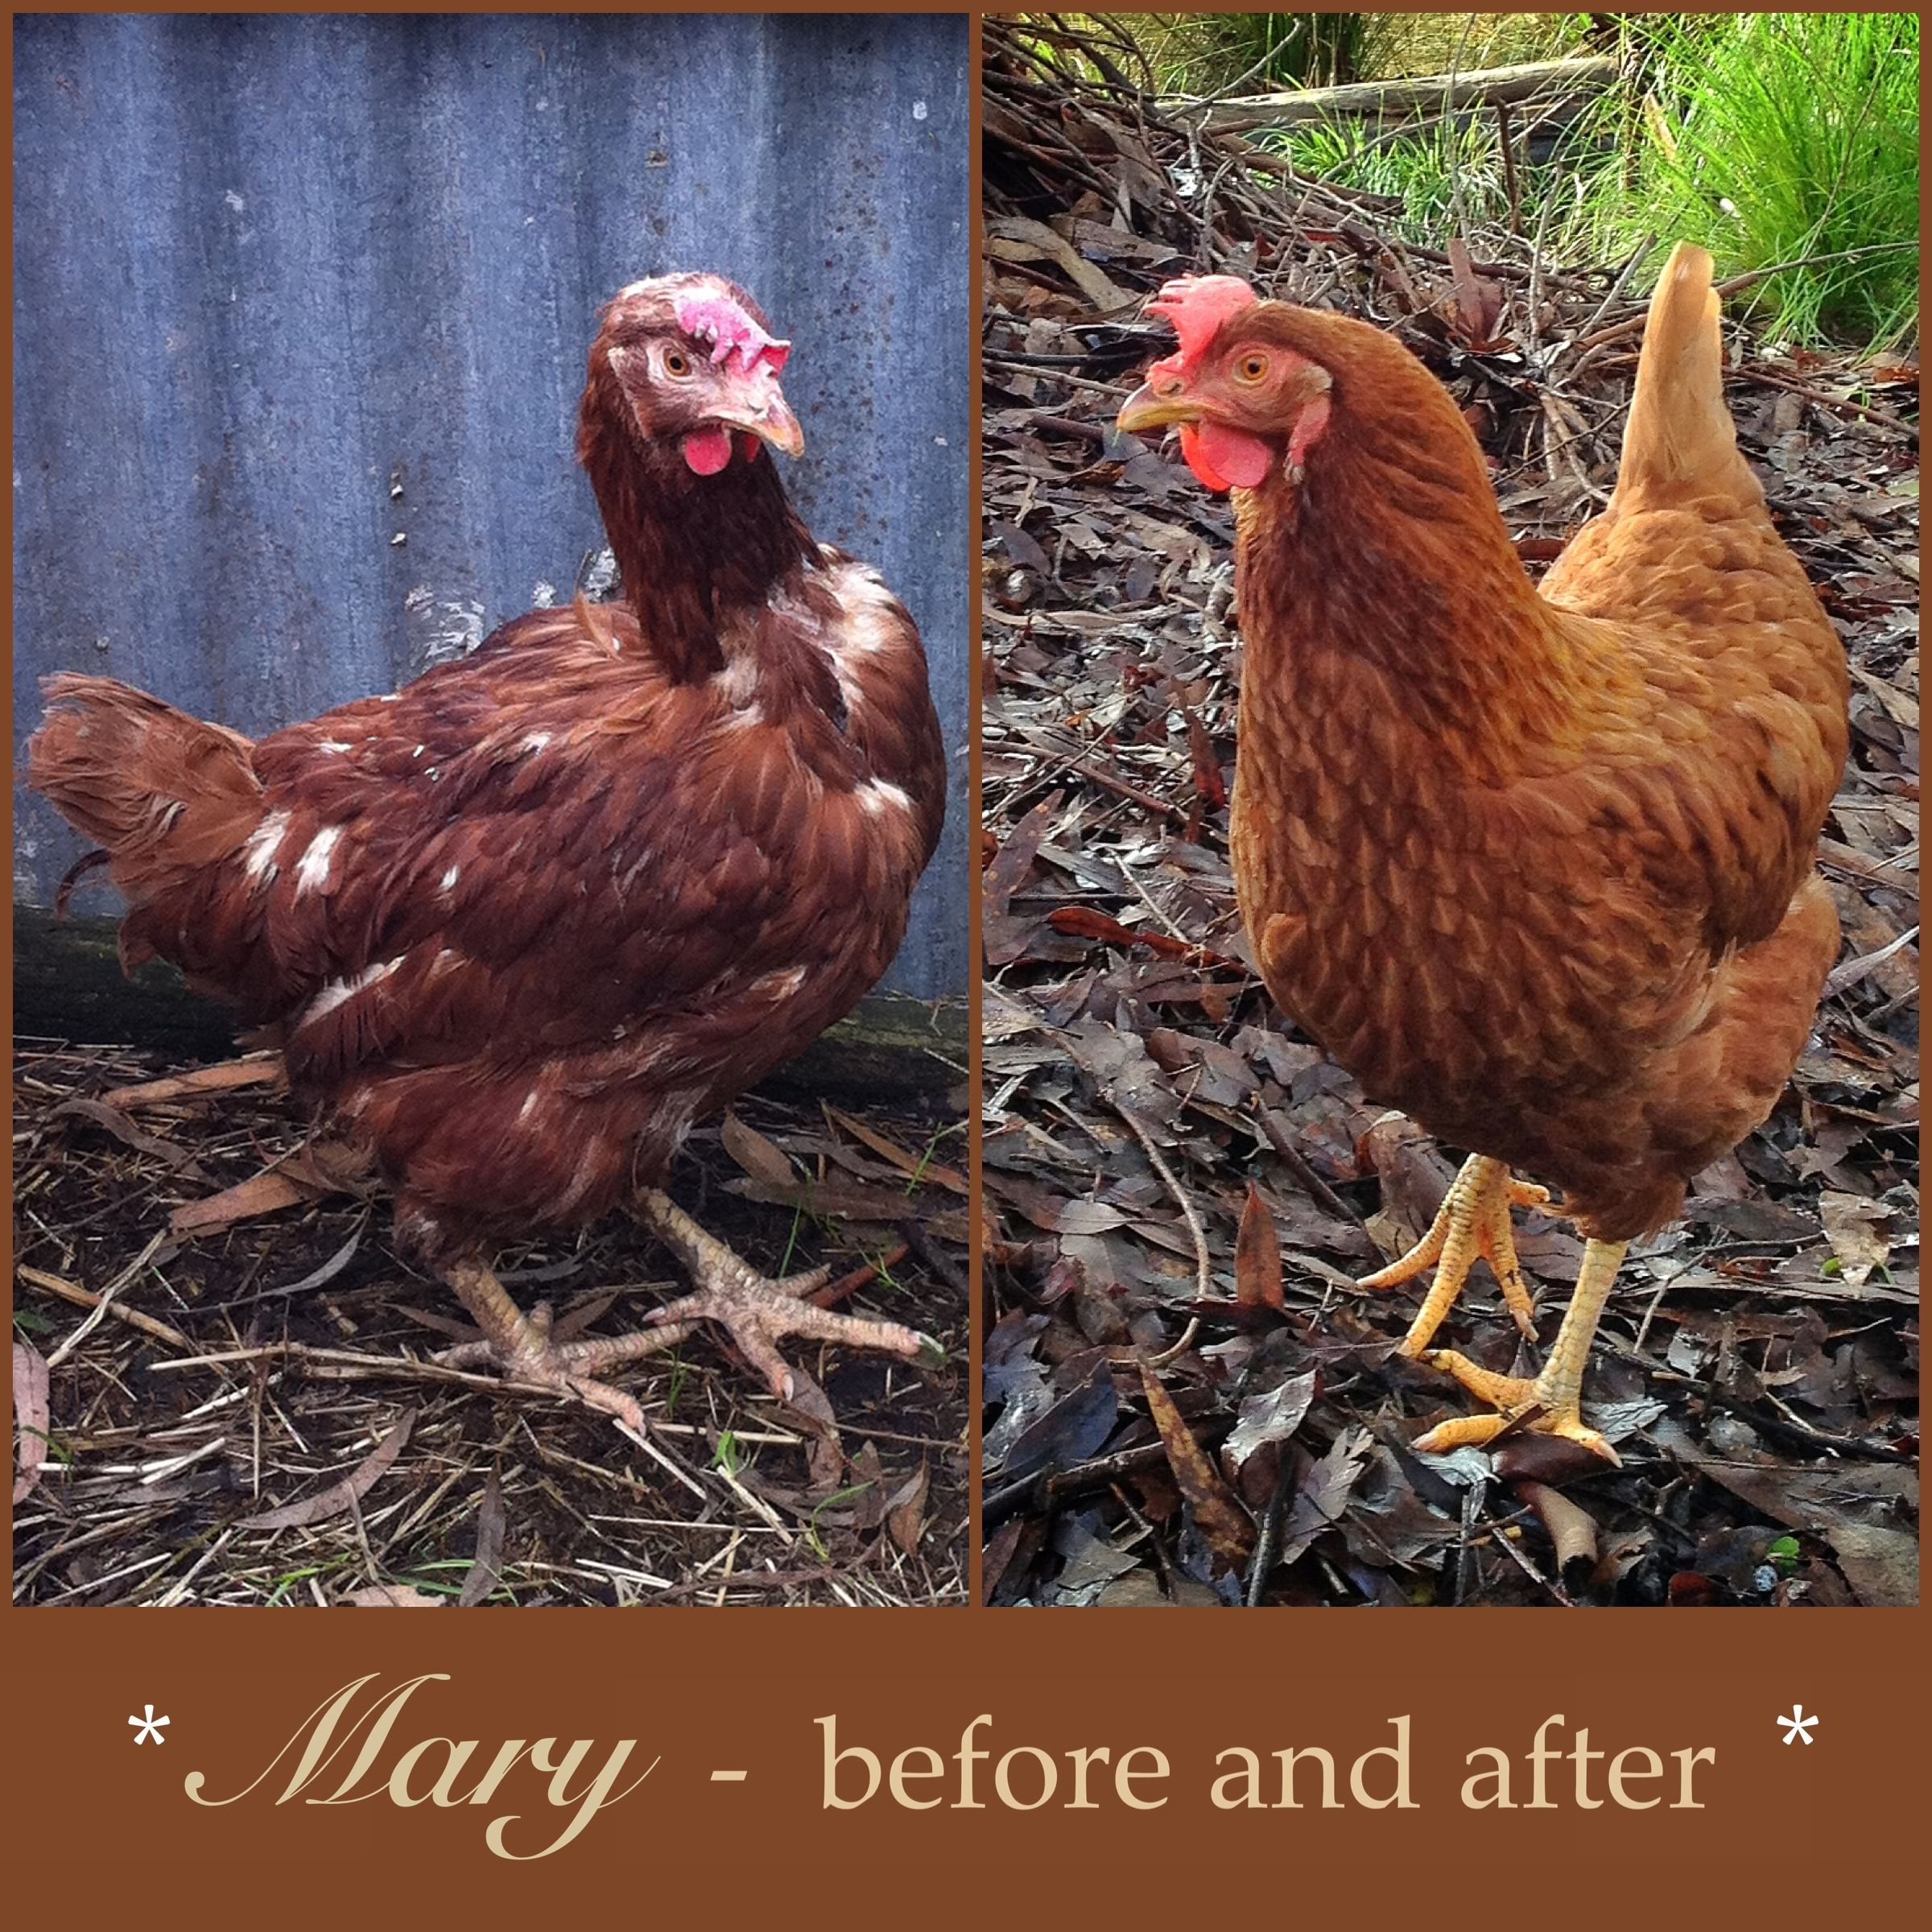 Mary Before And After Is An Ex Battery Hen Now Transformed Into A Princess